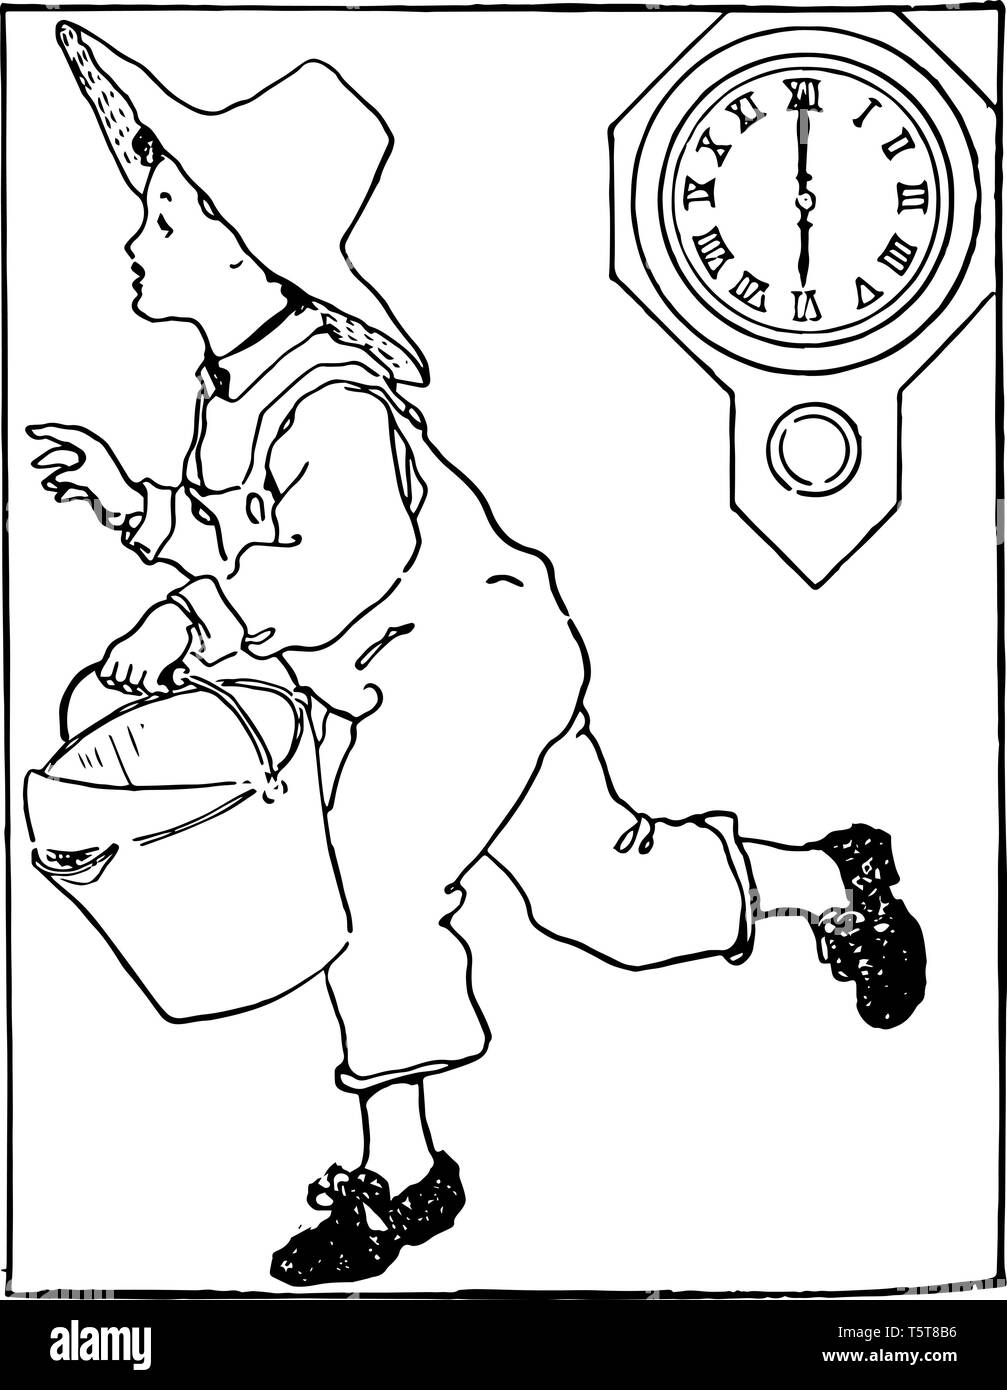 A Child Is Running Holding A Bucket In His Hands And Wearing A Hat In His Head With Clock Showing Time As 6 00 Vintage Line Drawing Or Engraving Illu Stock Vector Image